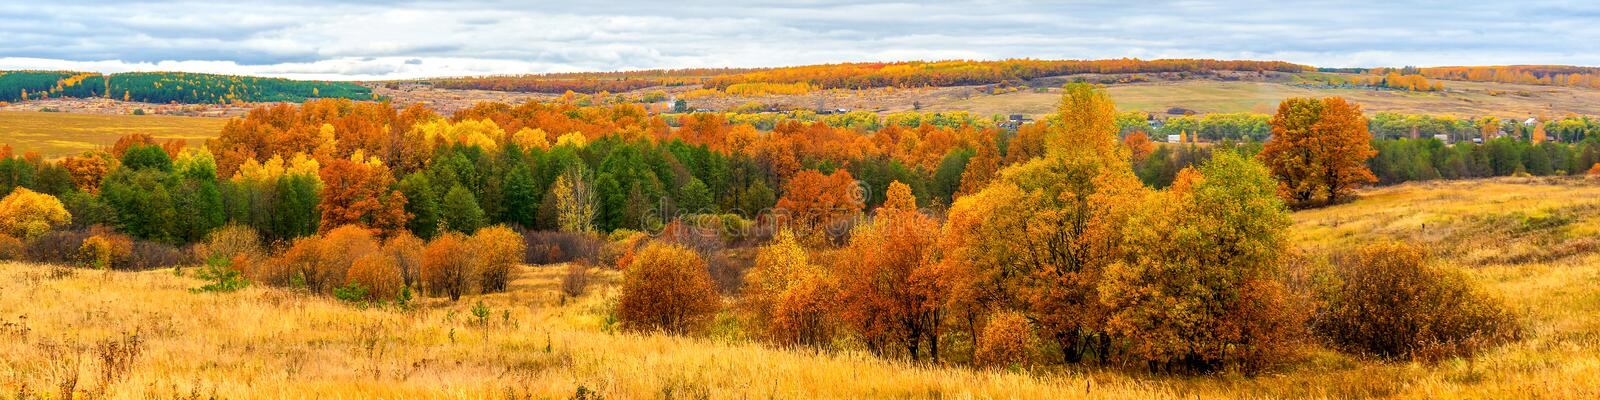 Picturesque autumn landscape in green and yellow colors. Panoramic view from hill to lowland with grove, village and field in stock photos